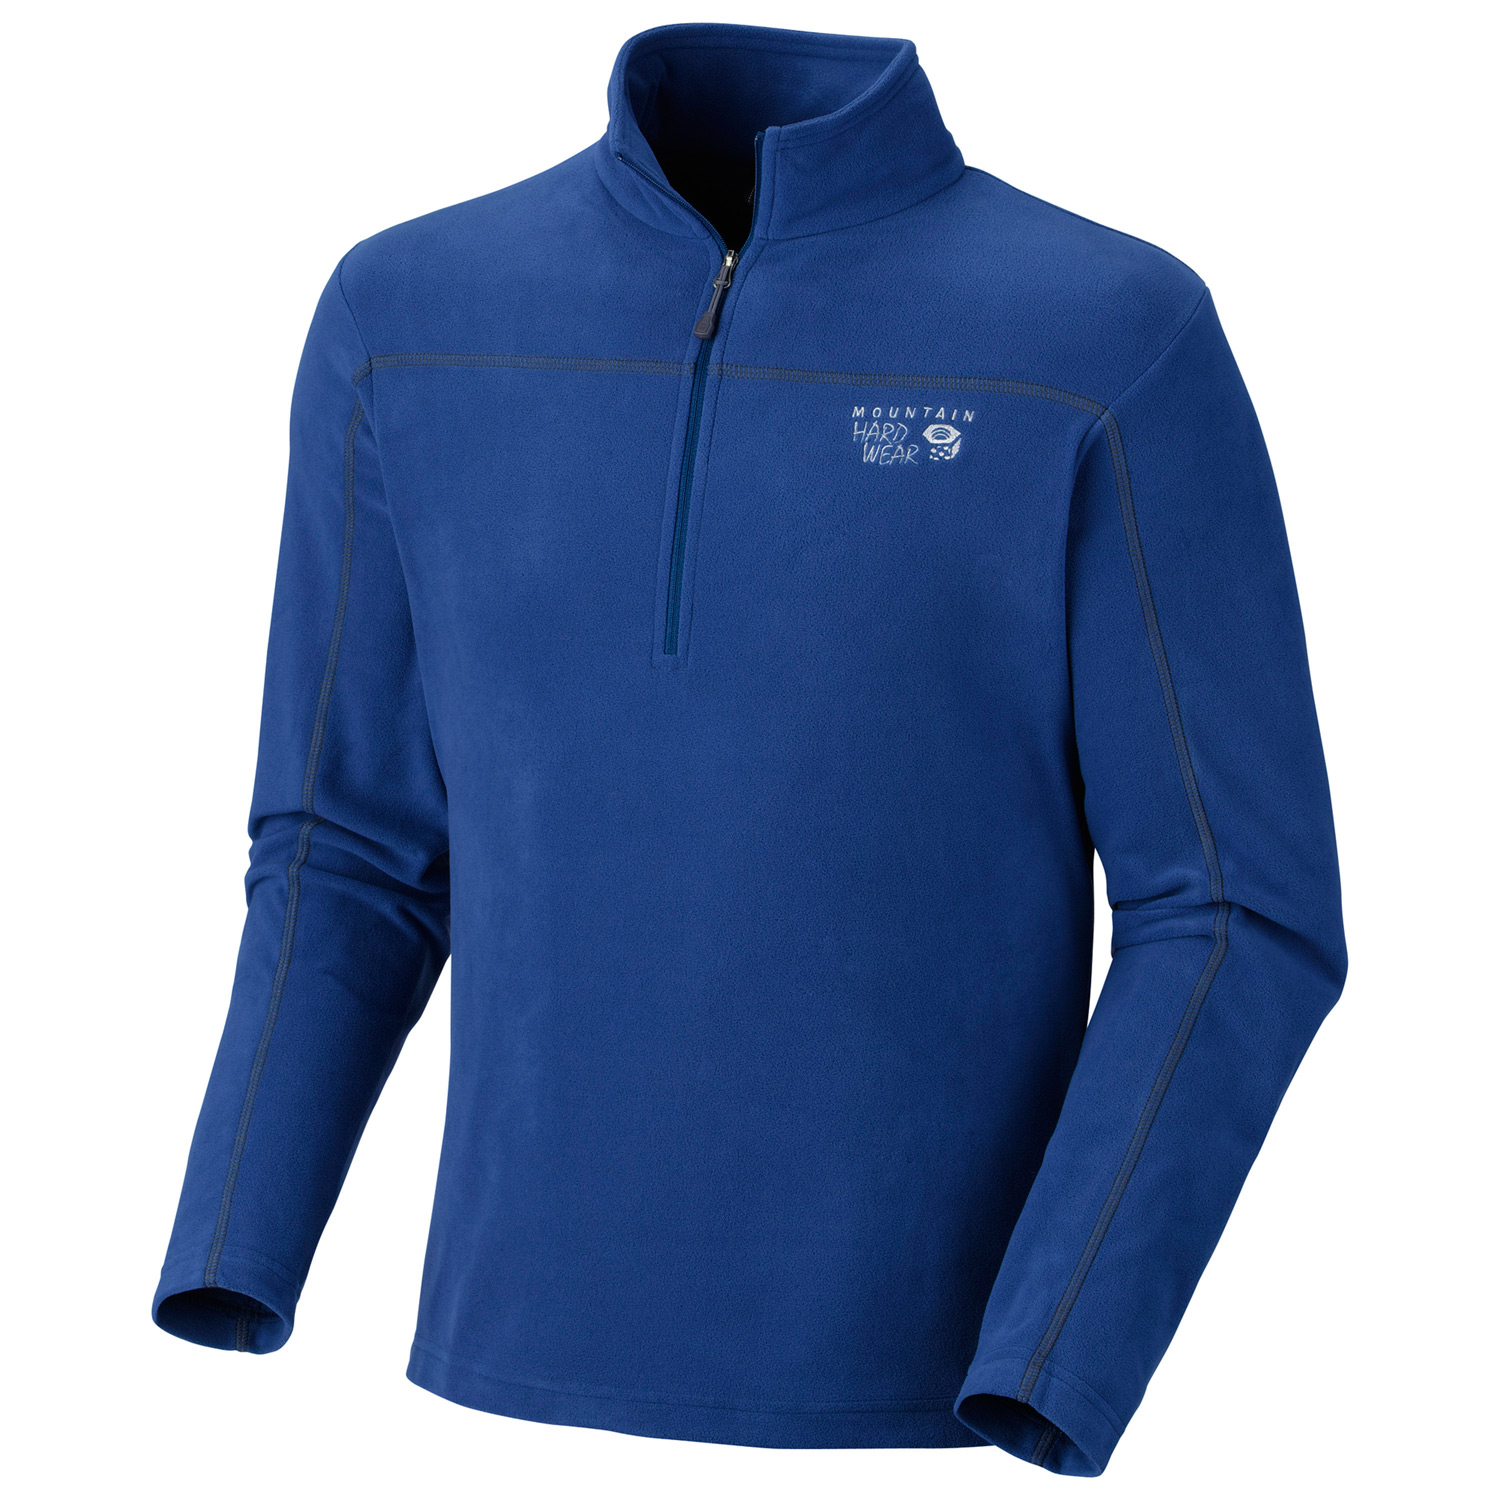 Warm, lightweight and comfortable, ideal for layering. Soft, lightweight durable microfleece. The perfect weight for layering. - $55.00